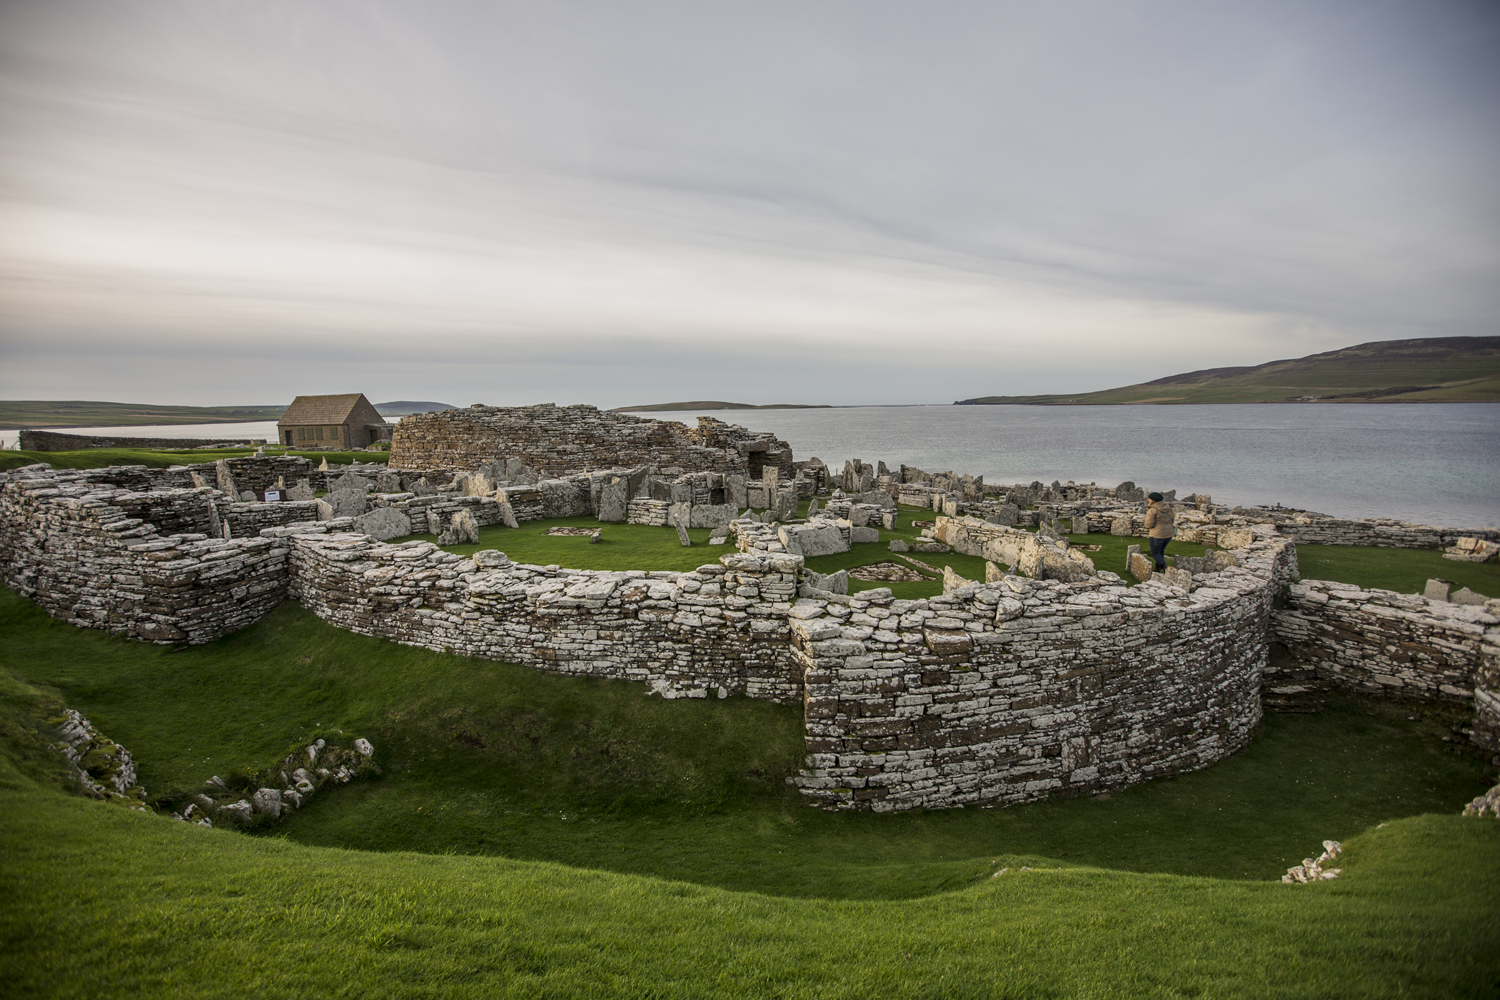 Eynhallow from the broch